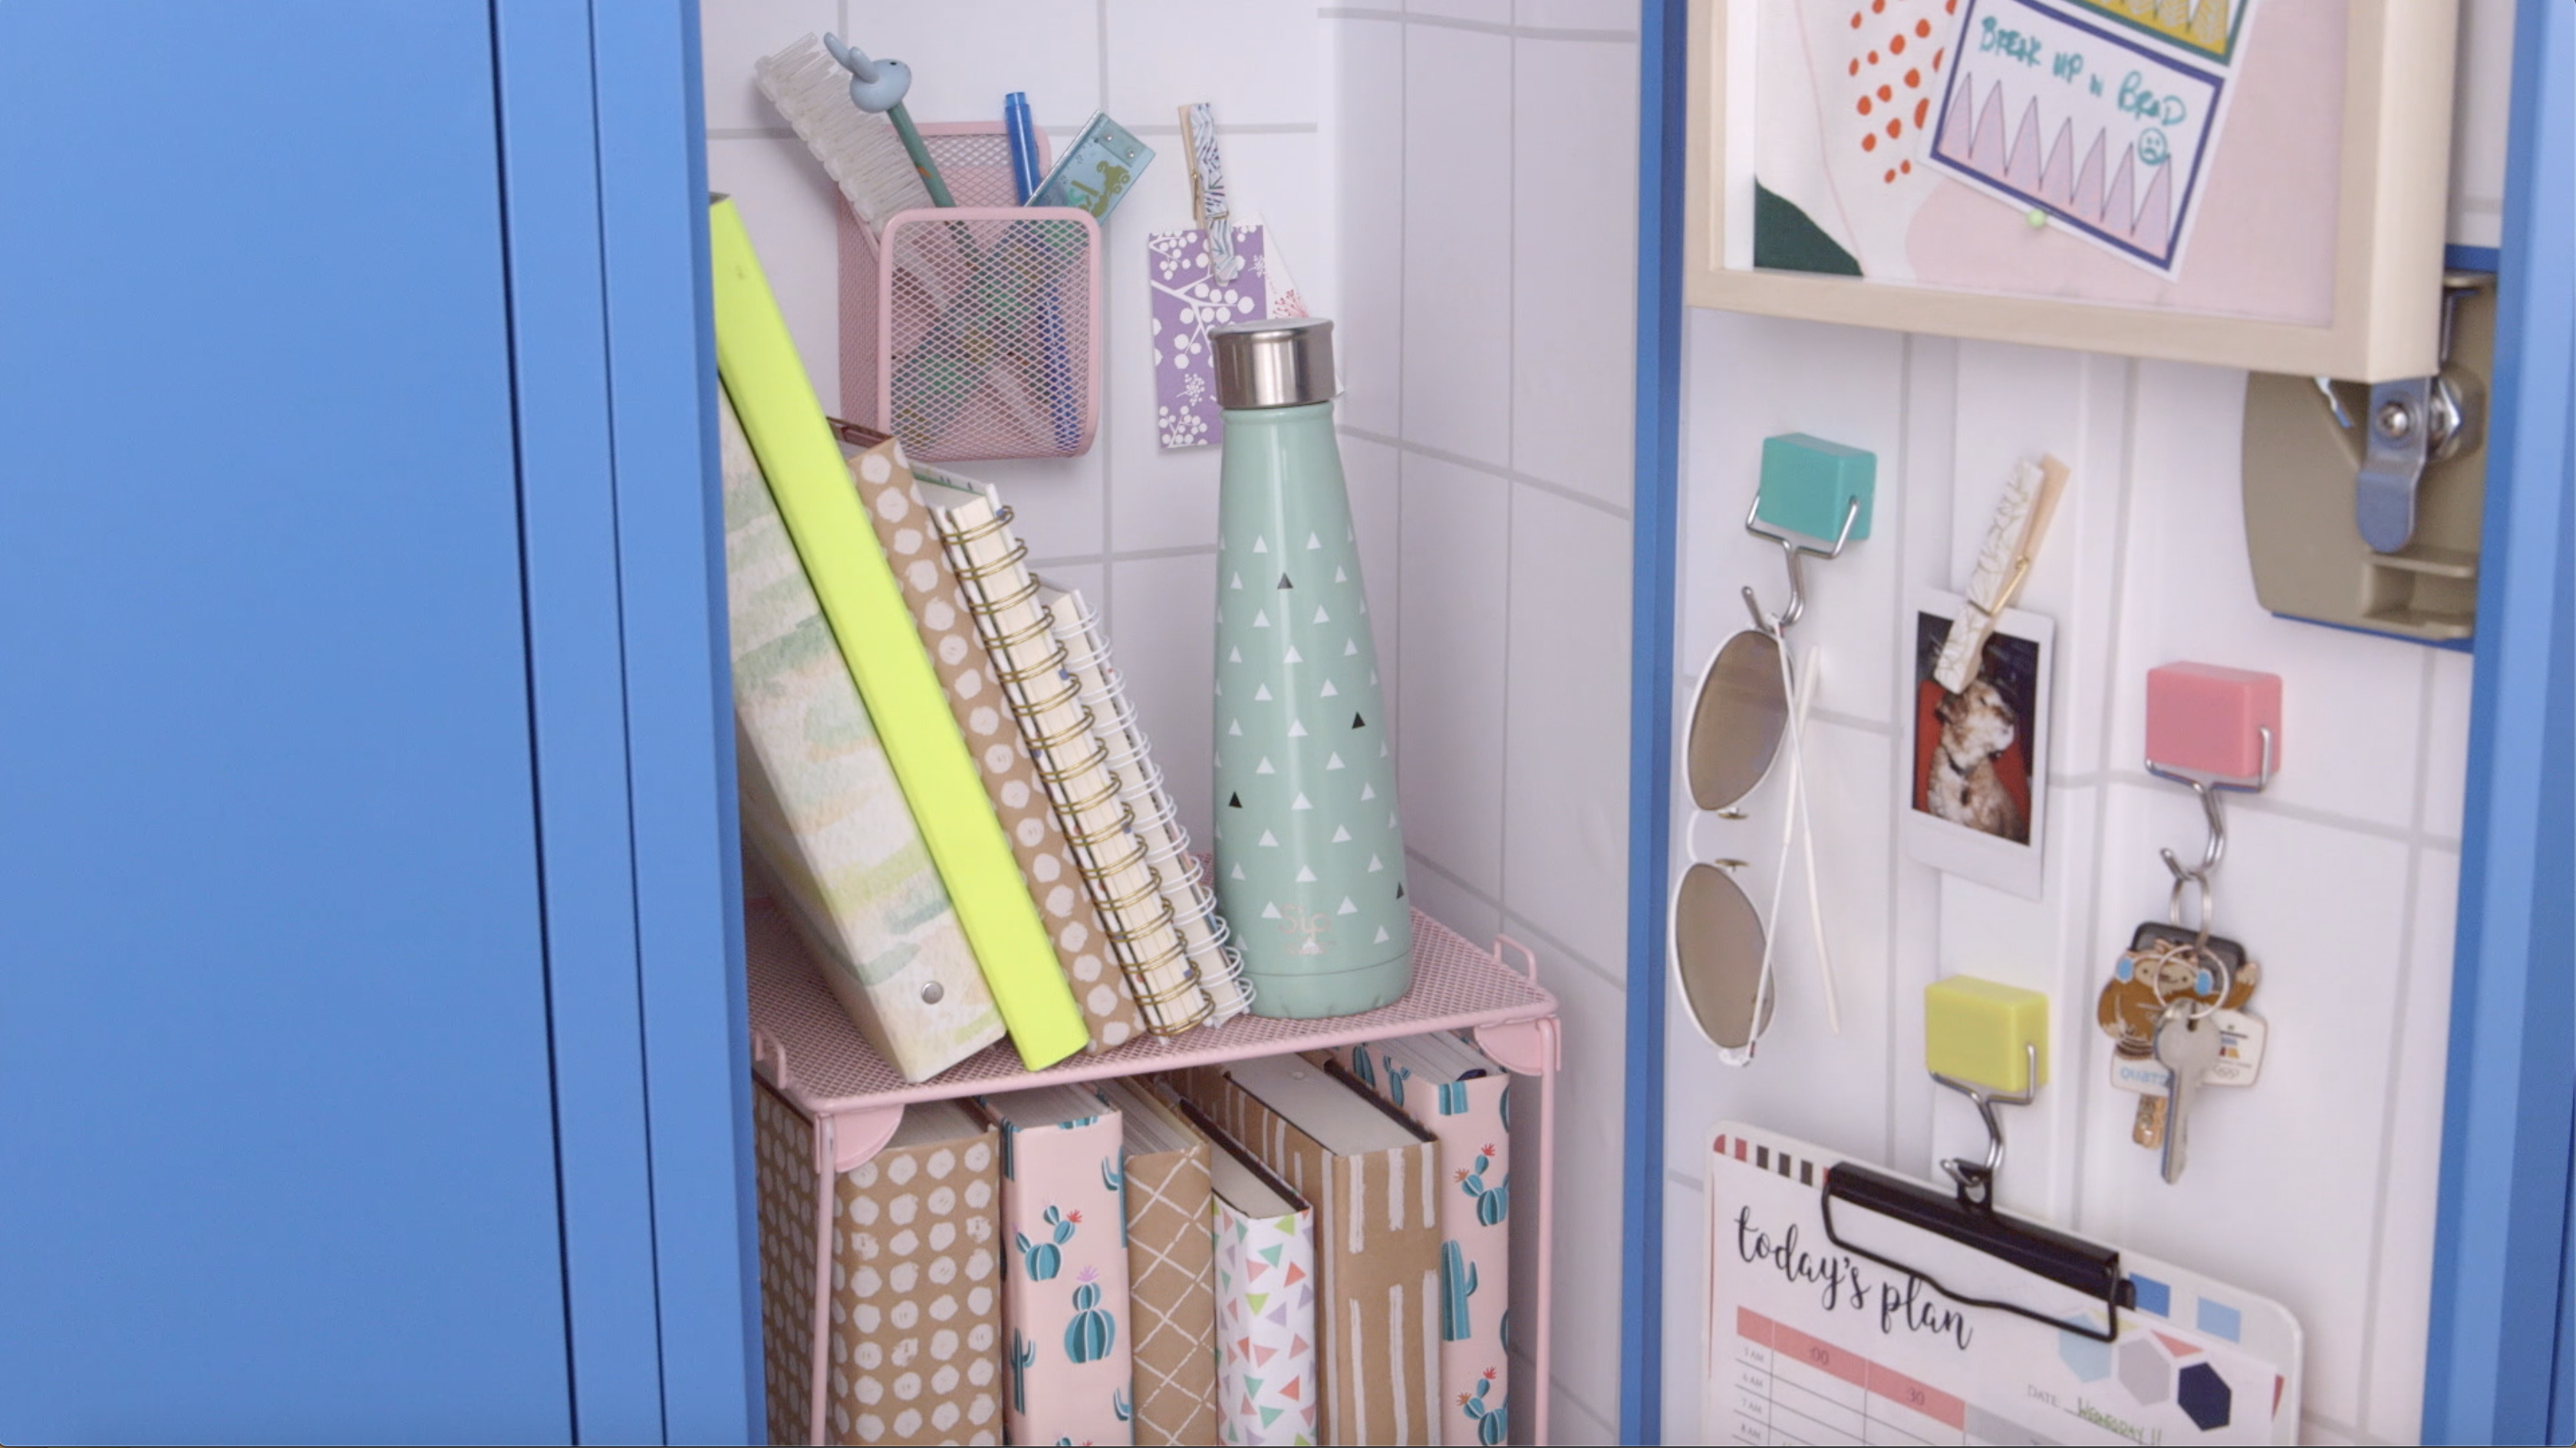 Home Hacks: Get your locker ready for the school year